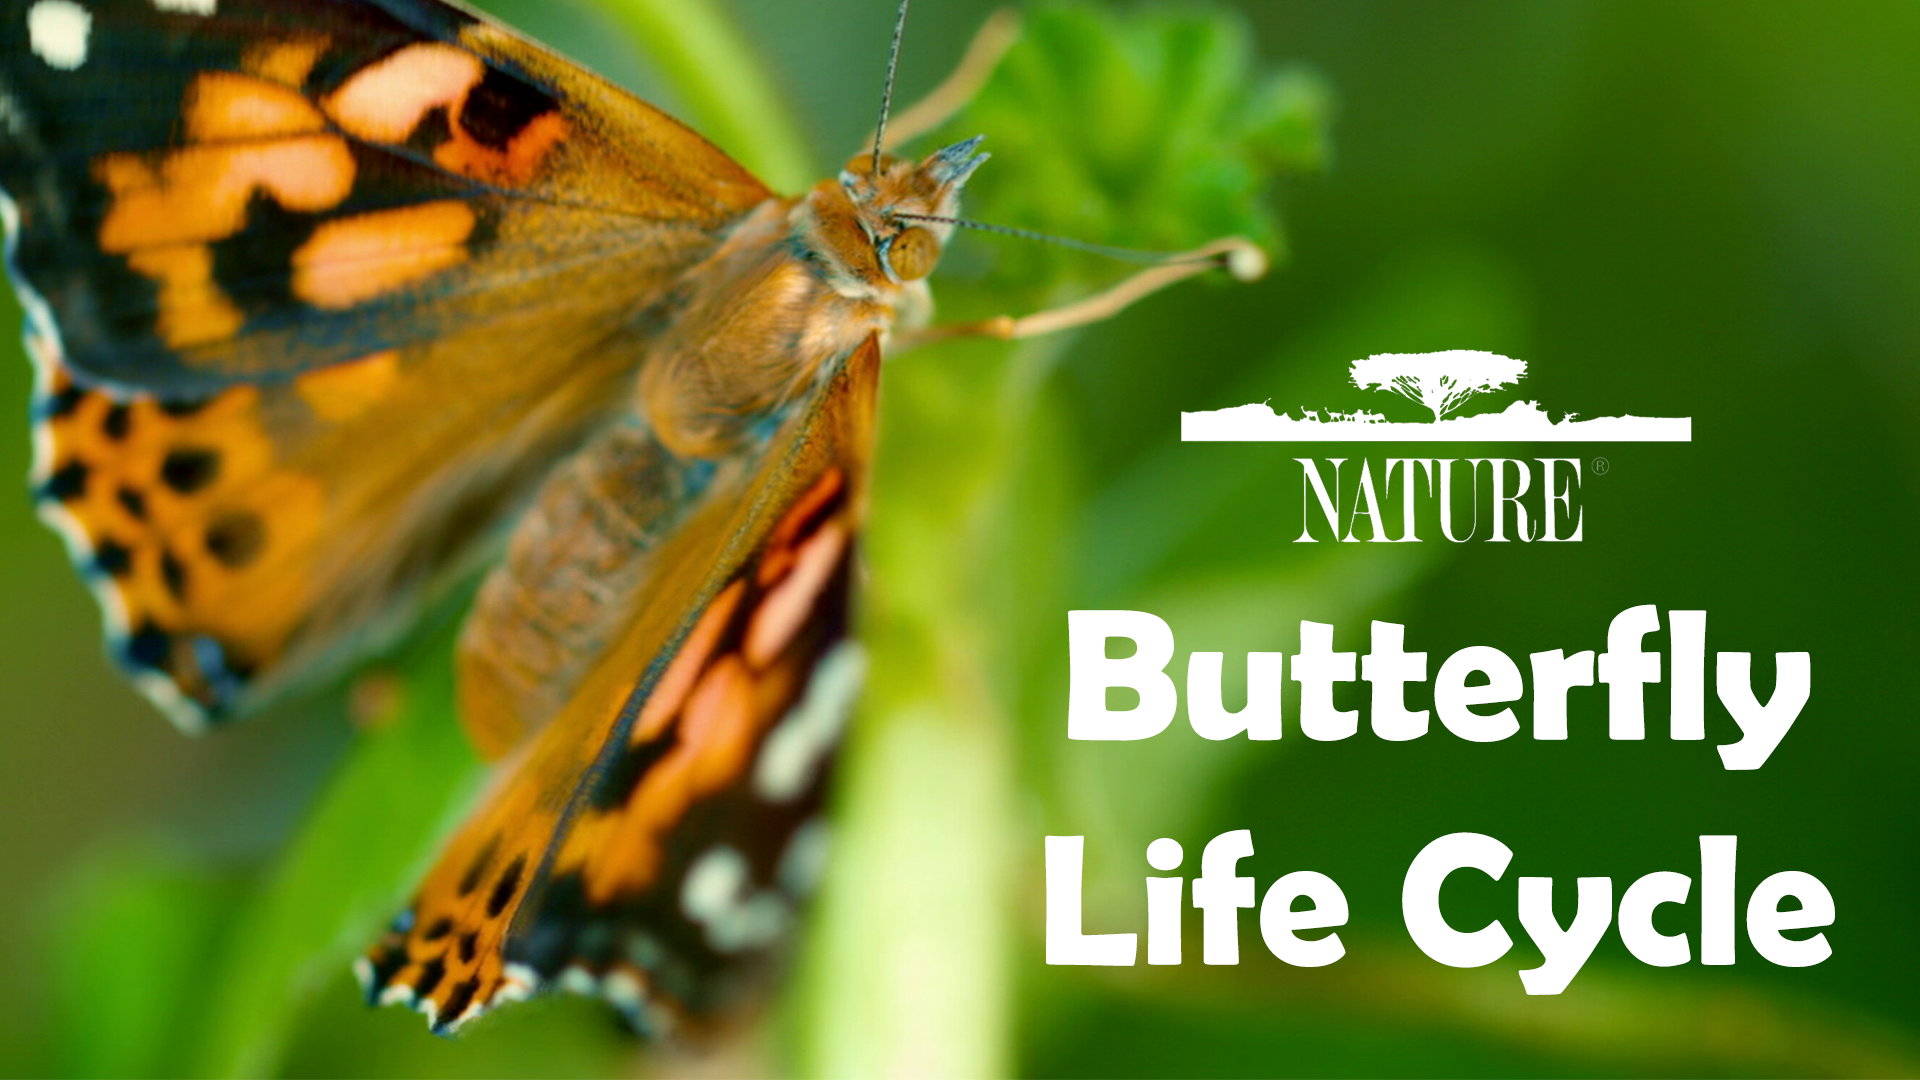 Butterfly Life Cycle | PBS LearningMedia